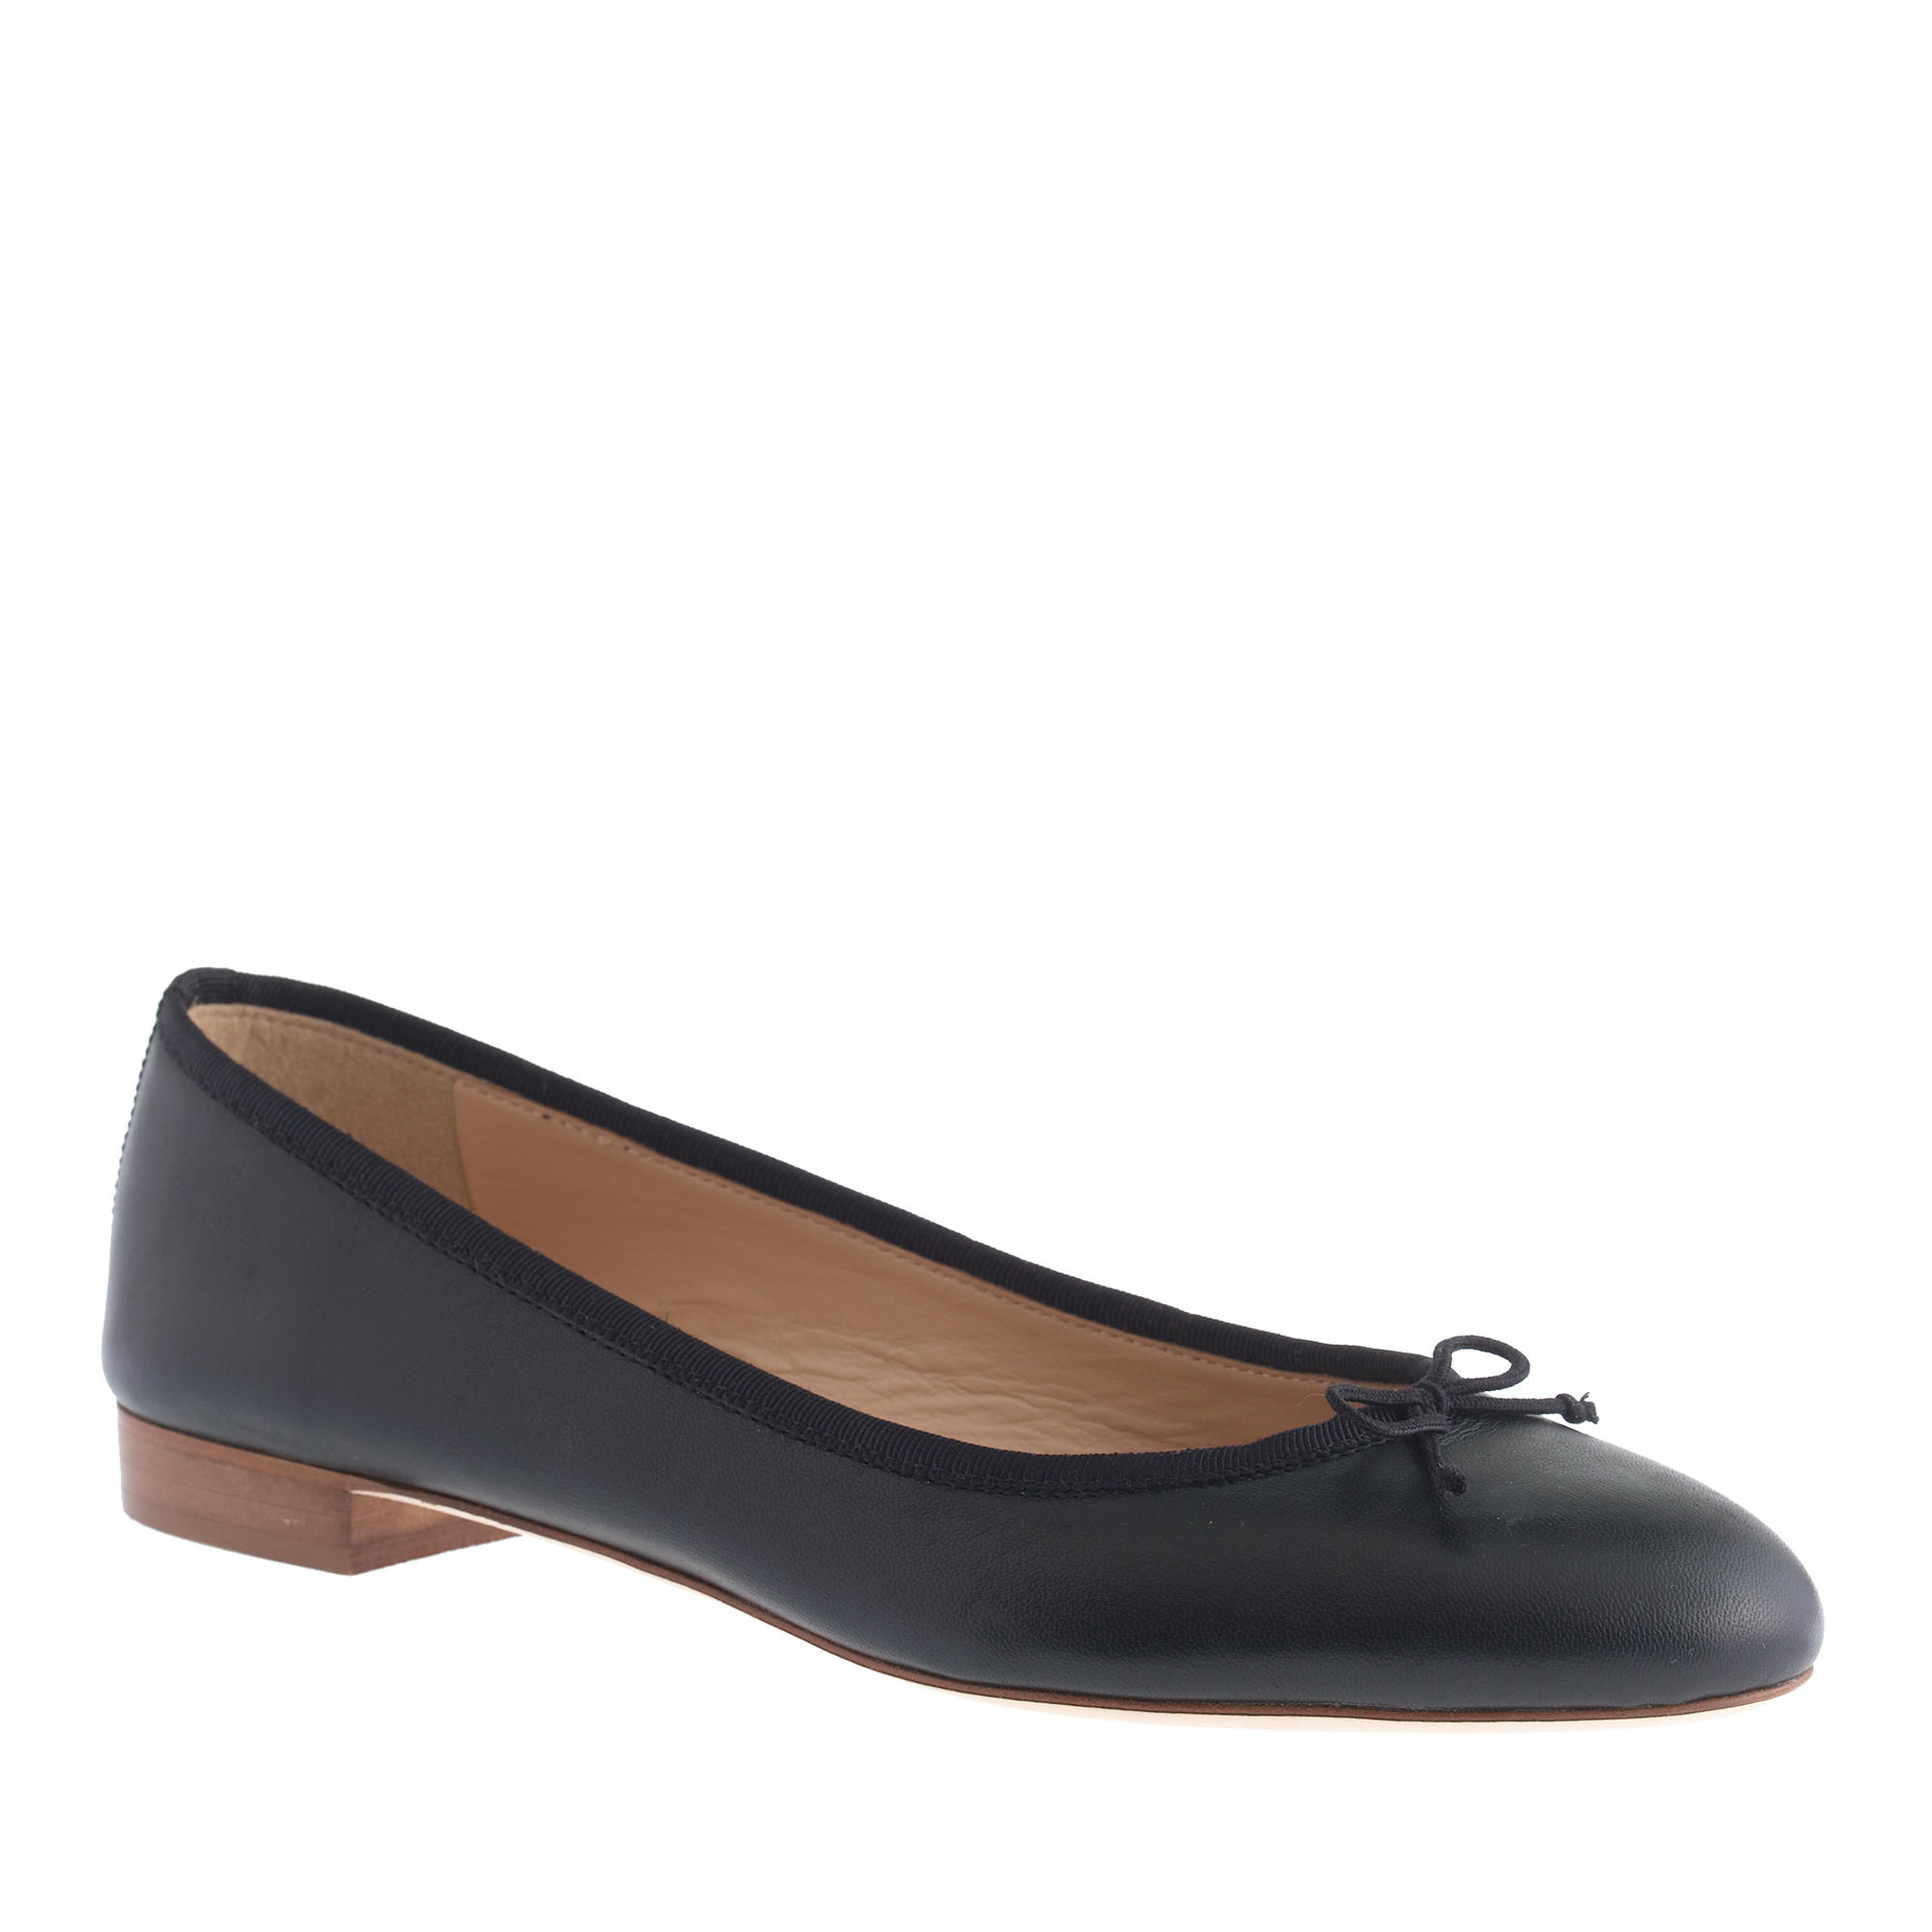 "Looking for ballet flats that are sure to be your everyday go-to? Take a gander at our sleek 'n' chic selection, feature pointed-toe flats in classic hues like black and navy. Or go for on-trend suede in a camel-colored shade, or a pair of ballet flats featuring sassy laces and ankle ties for a seriously stylish take on this timeless shoe.""."